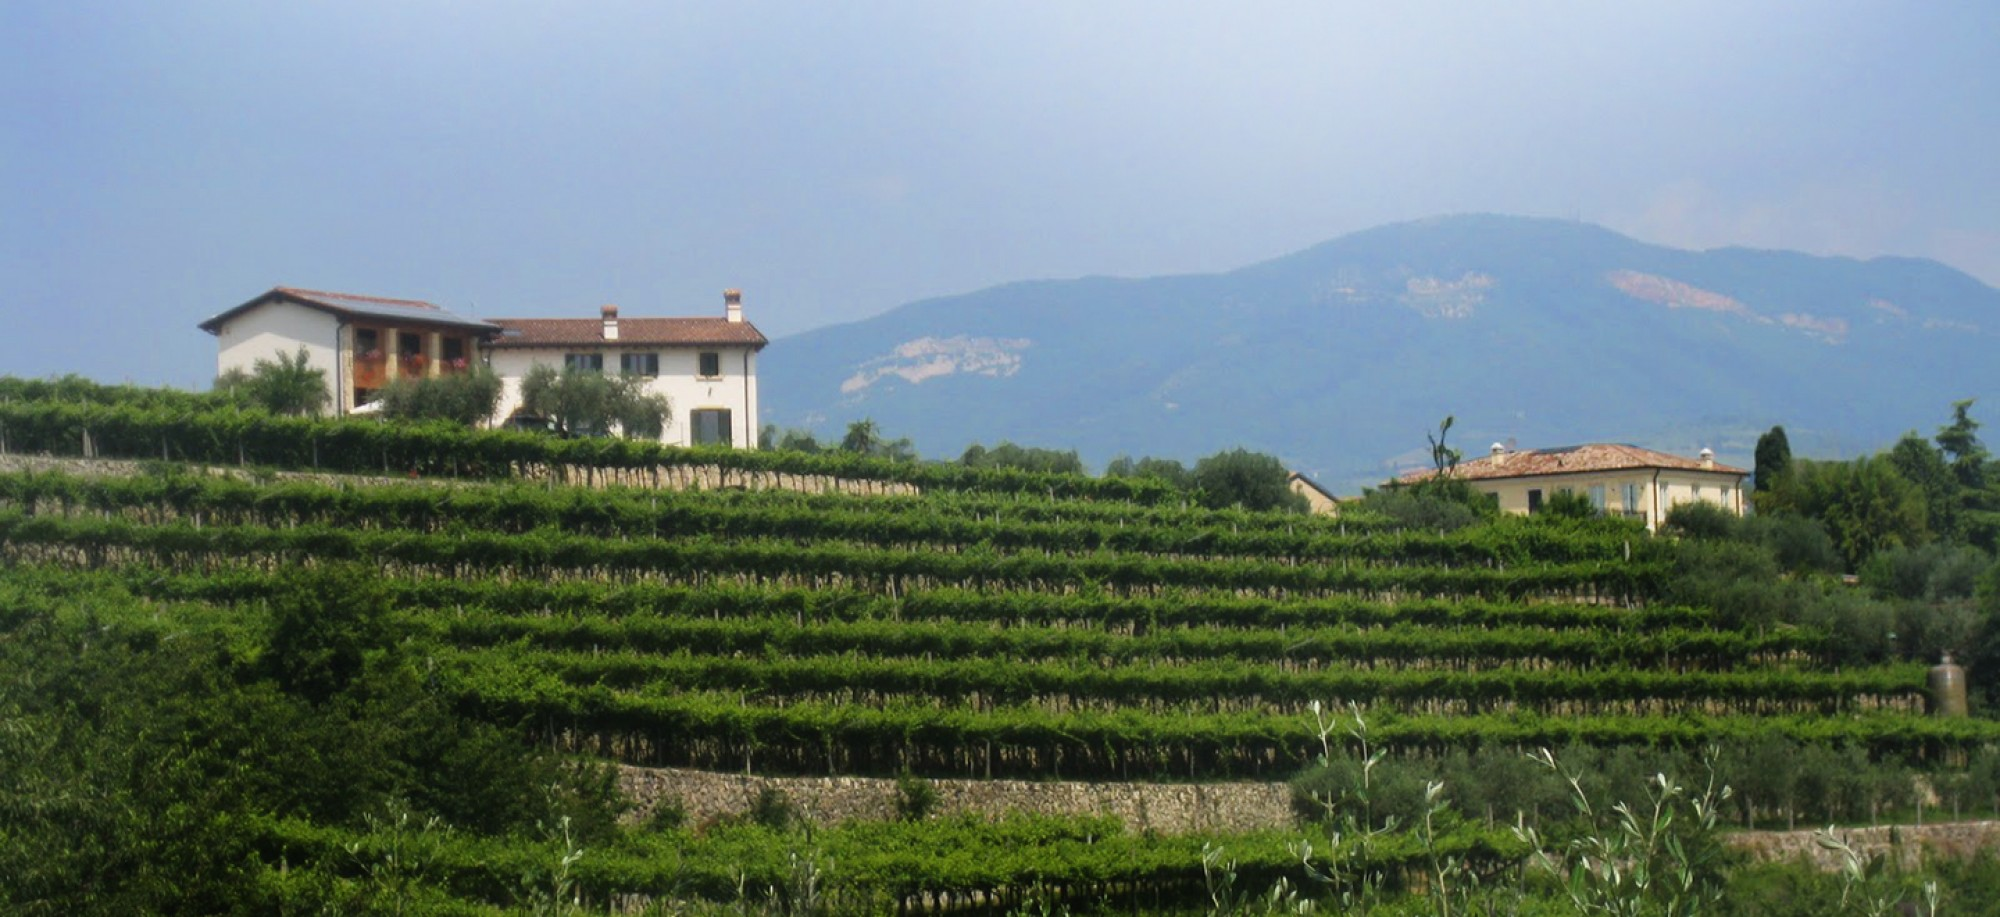 Panorama of the vineyard